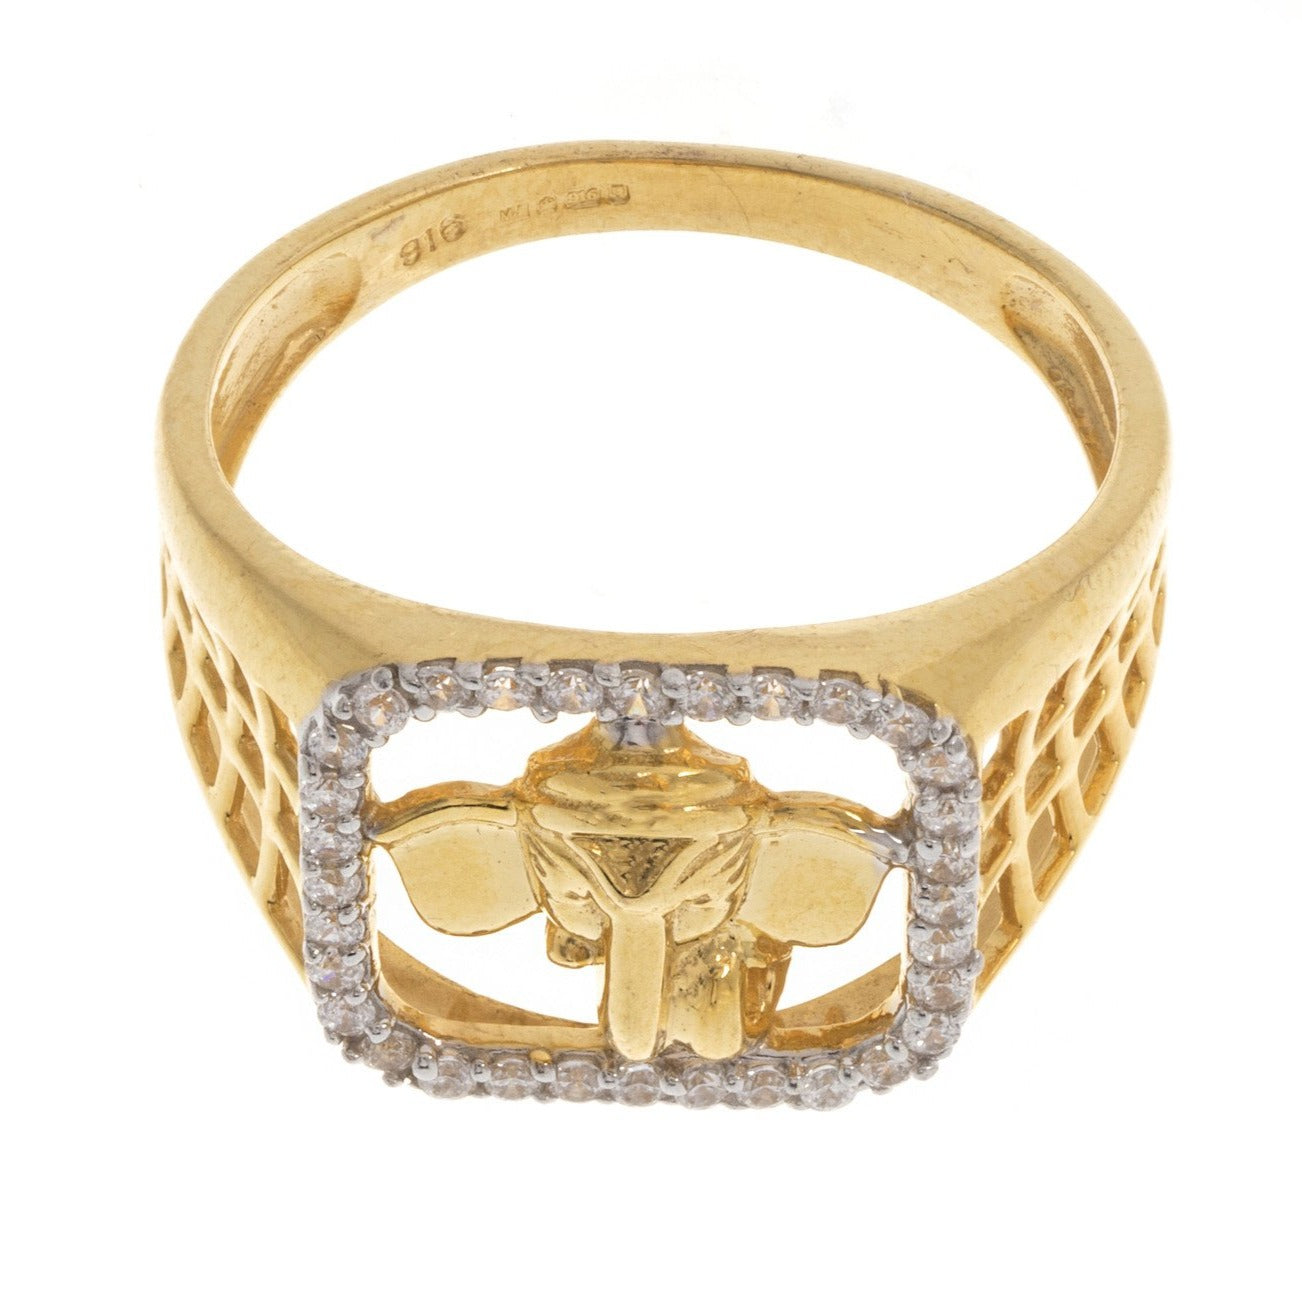 22ct Yellow Gold Cubic Zirconia Men's Ganesh Ring, Minar Jewellers - 4